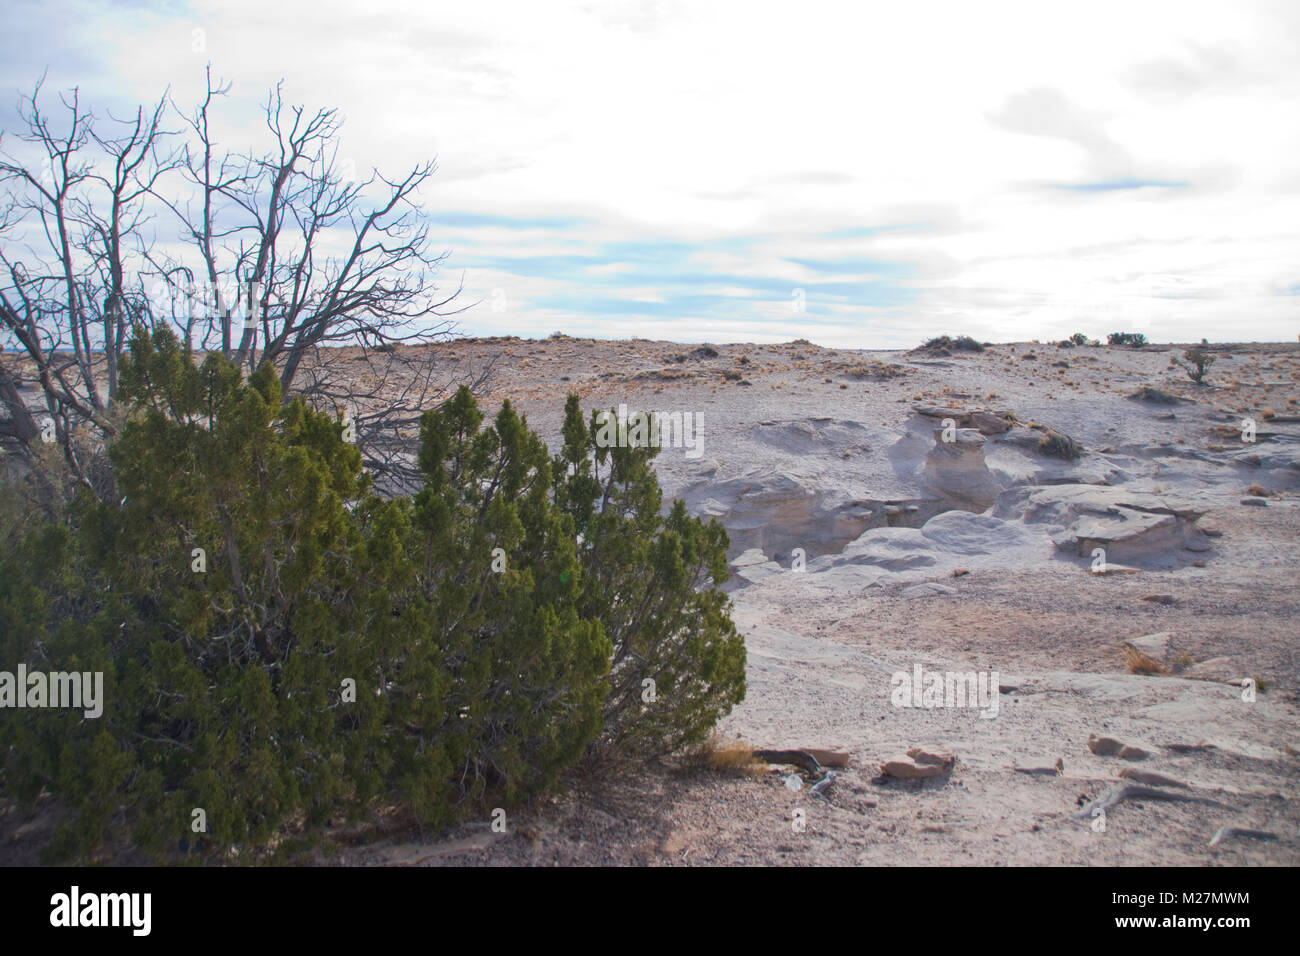 Painted Desert, Petrified Forest National Park in Arizona. - Stock Image